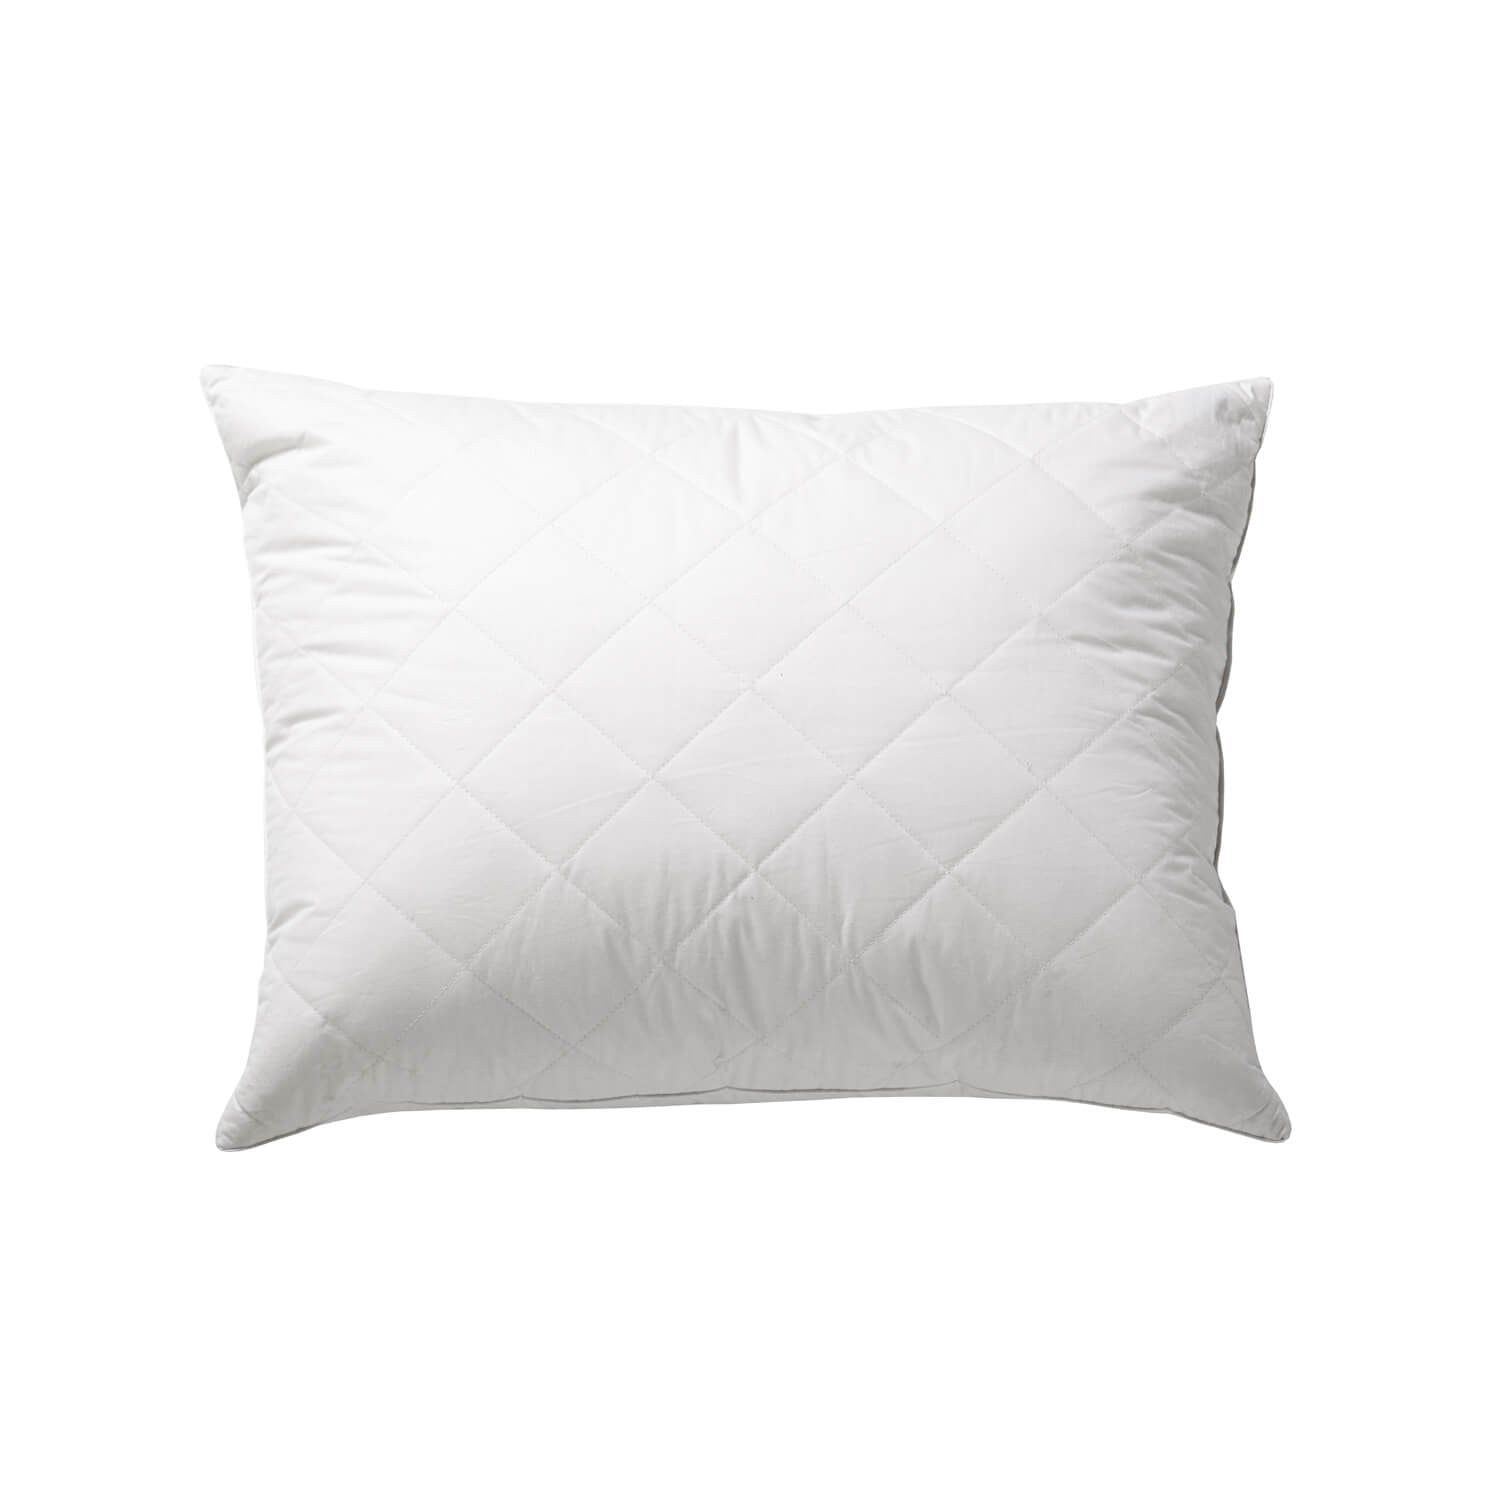 Quilted Down Standard Pillow Insert